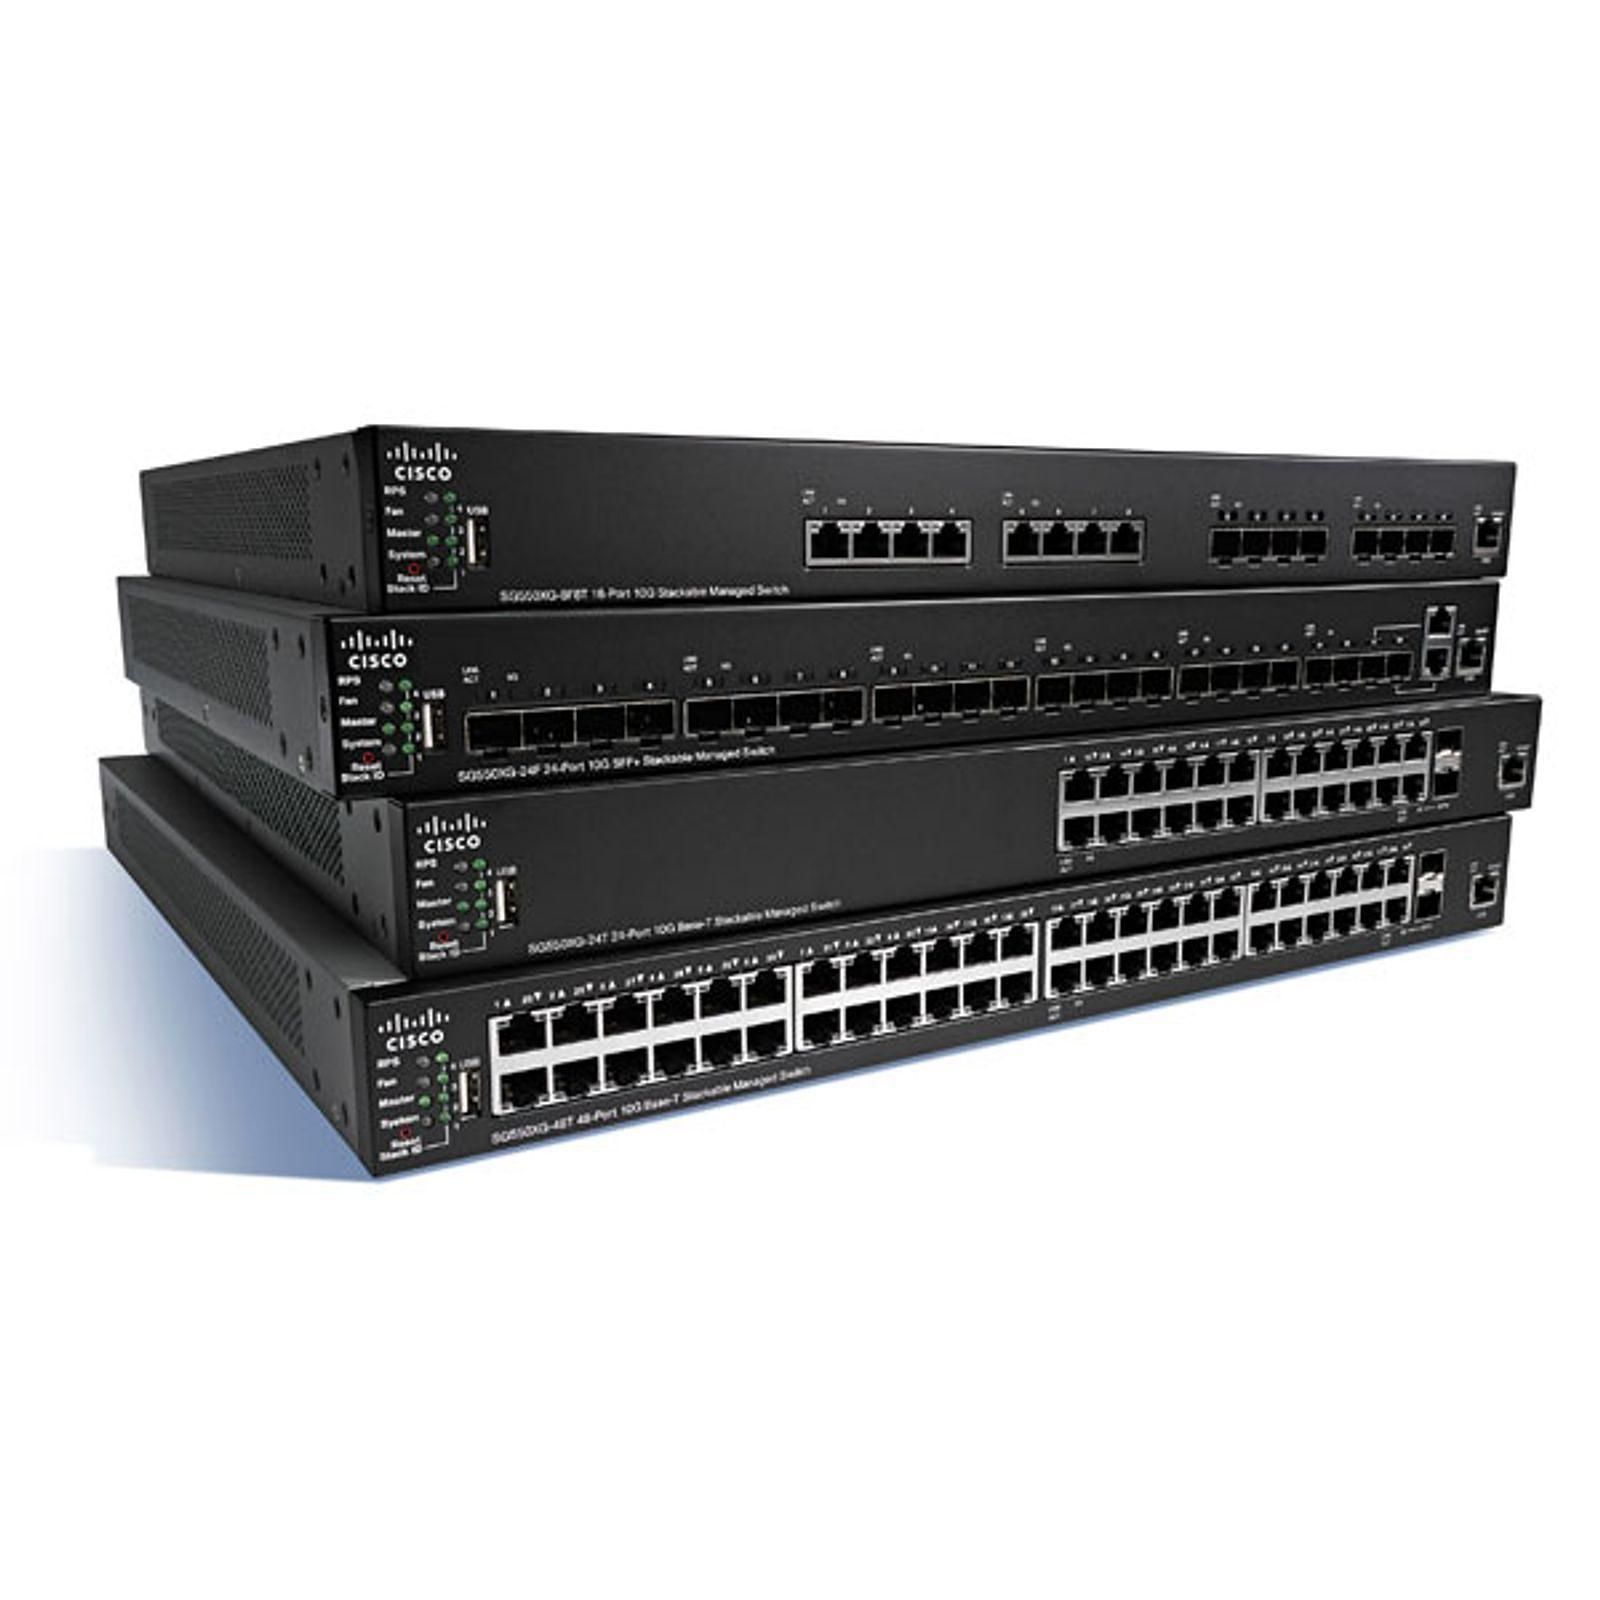 Cisco SG350X-24 (SG350X-24-K9-EU) Switch Gigabit Small Business 24 ports 10/100/1000 avec 4 x 10 Gigabit Ethernet (2 x 10GBase-T/SFP+ combo 2 x SFP )